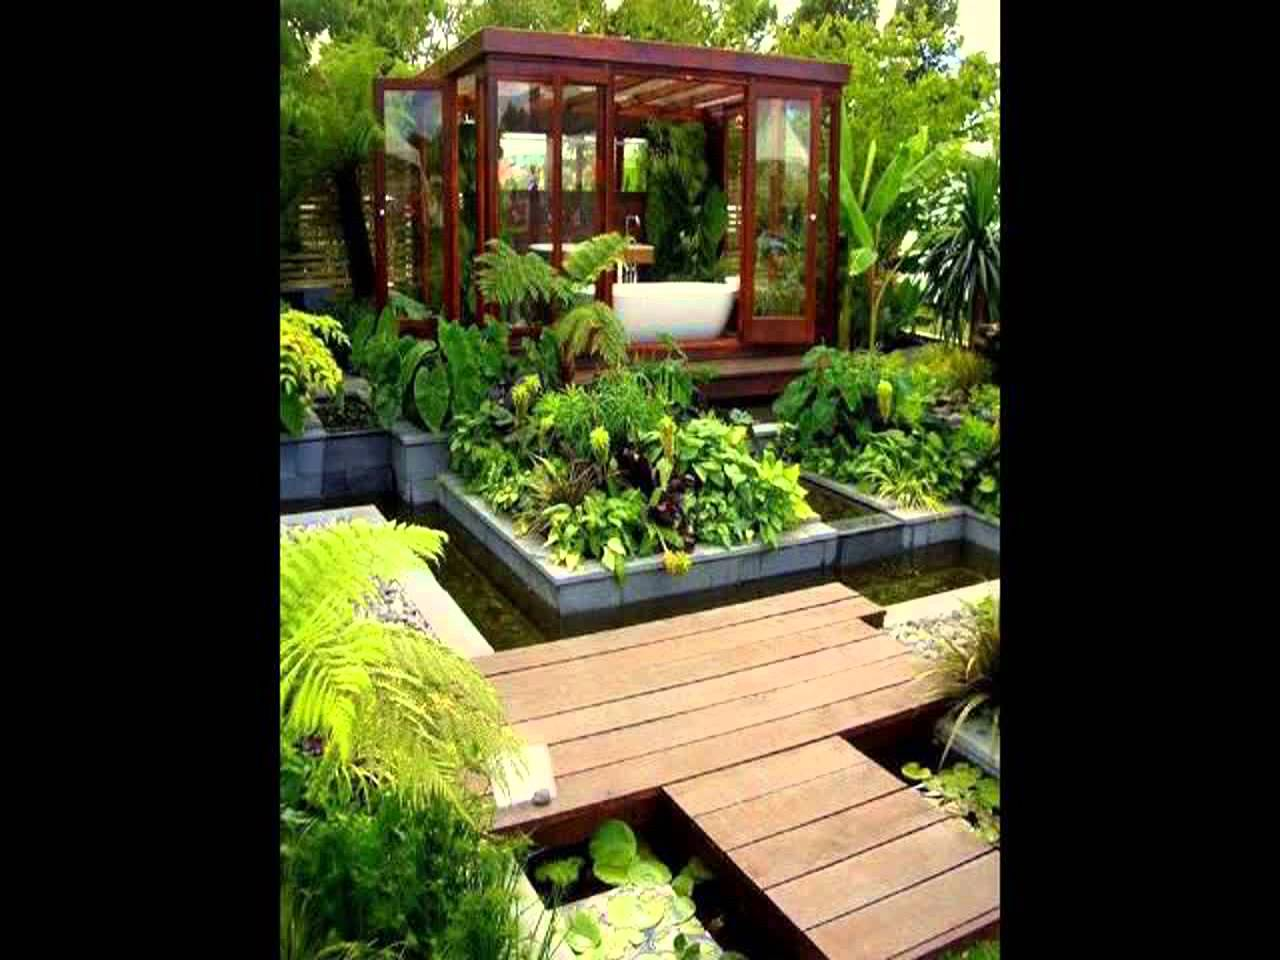 Dise o de jardines peque os gardening video forum for Estanque pequeno